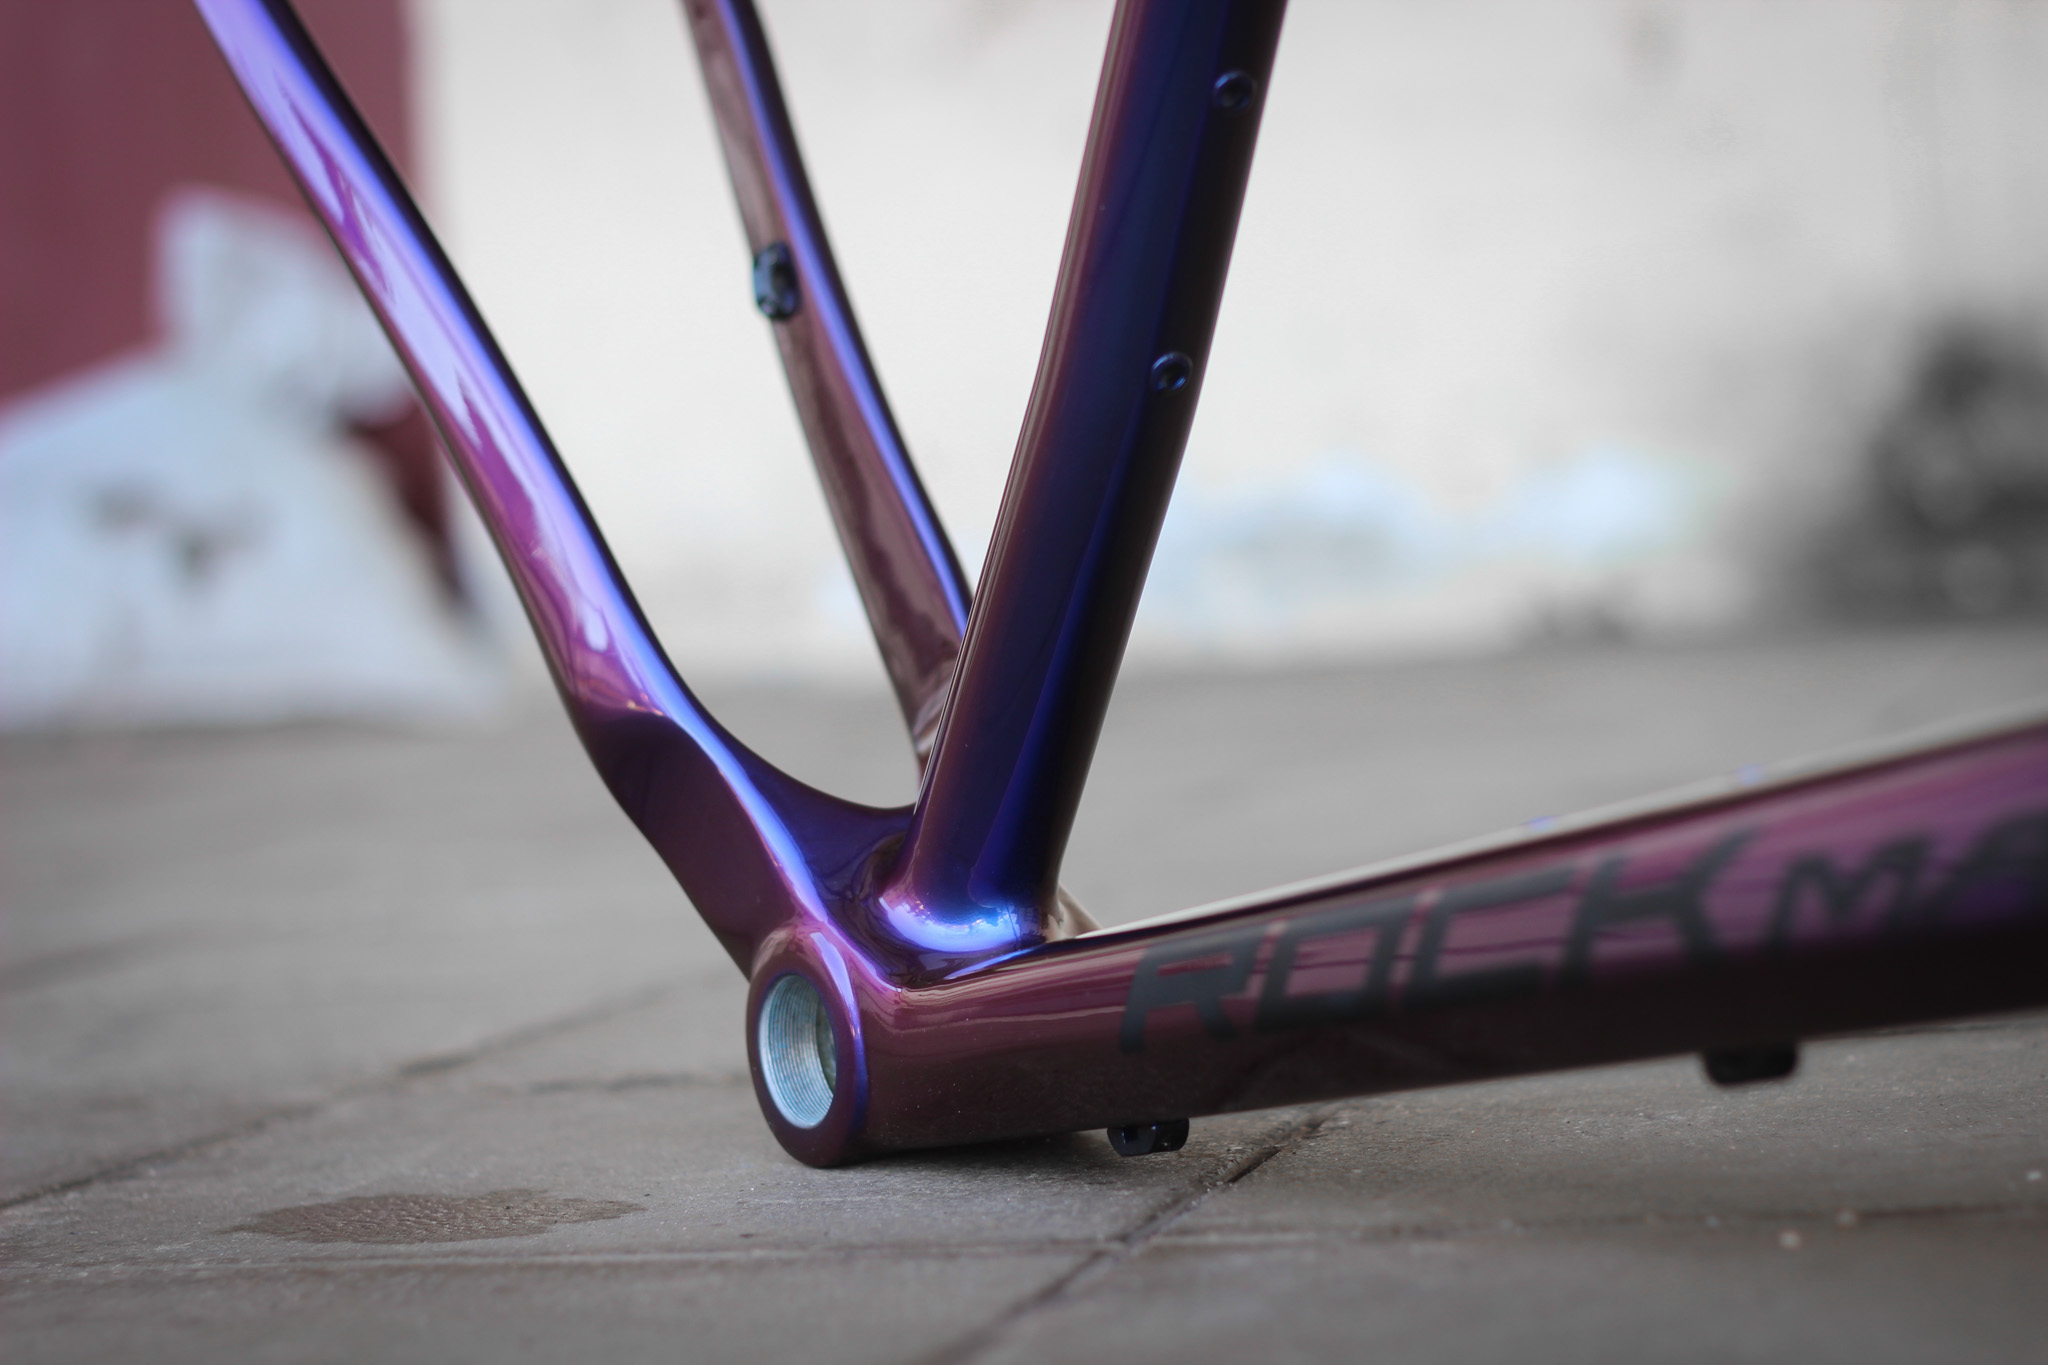 Carbon Bike Frame >> How To Repaint Carbon Frame To A New Chameleon Color